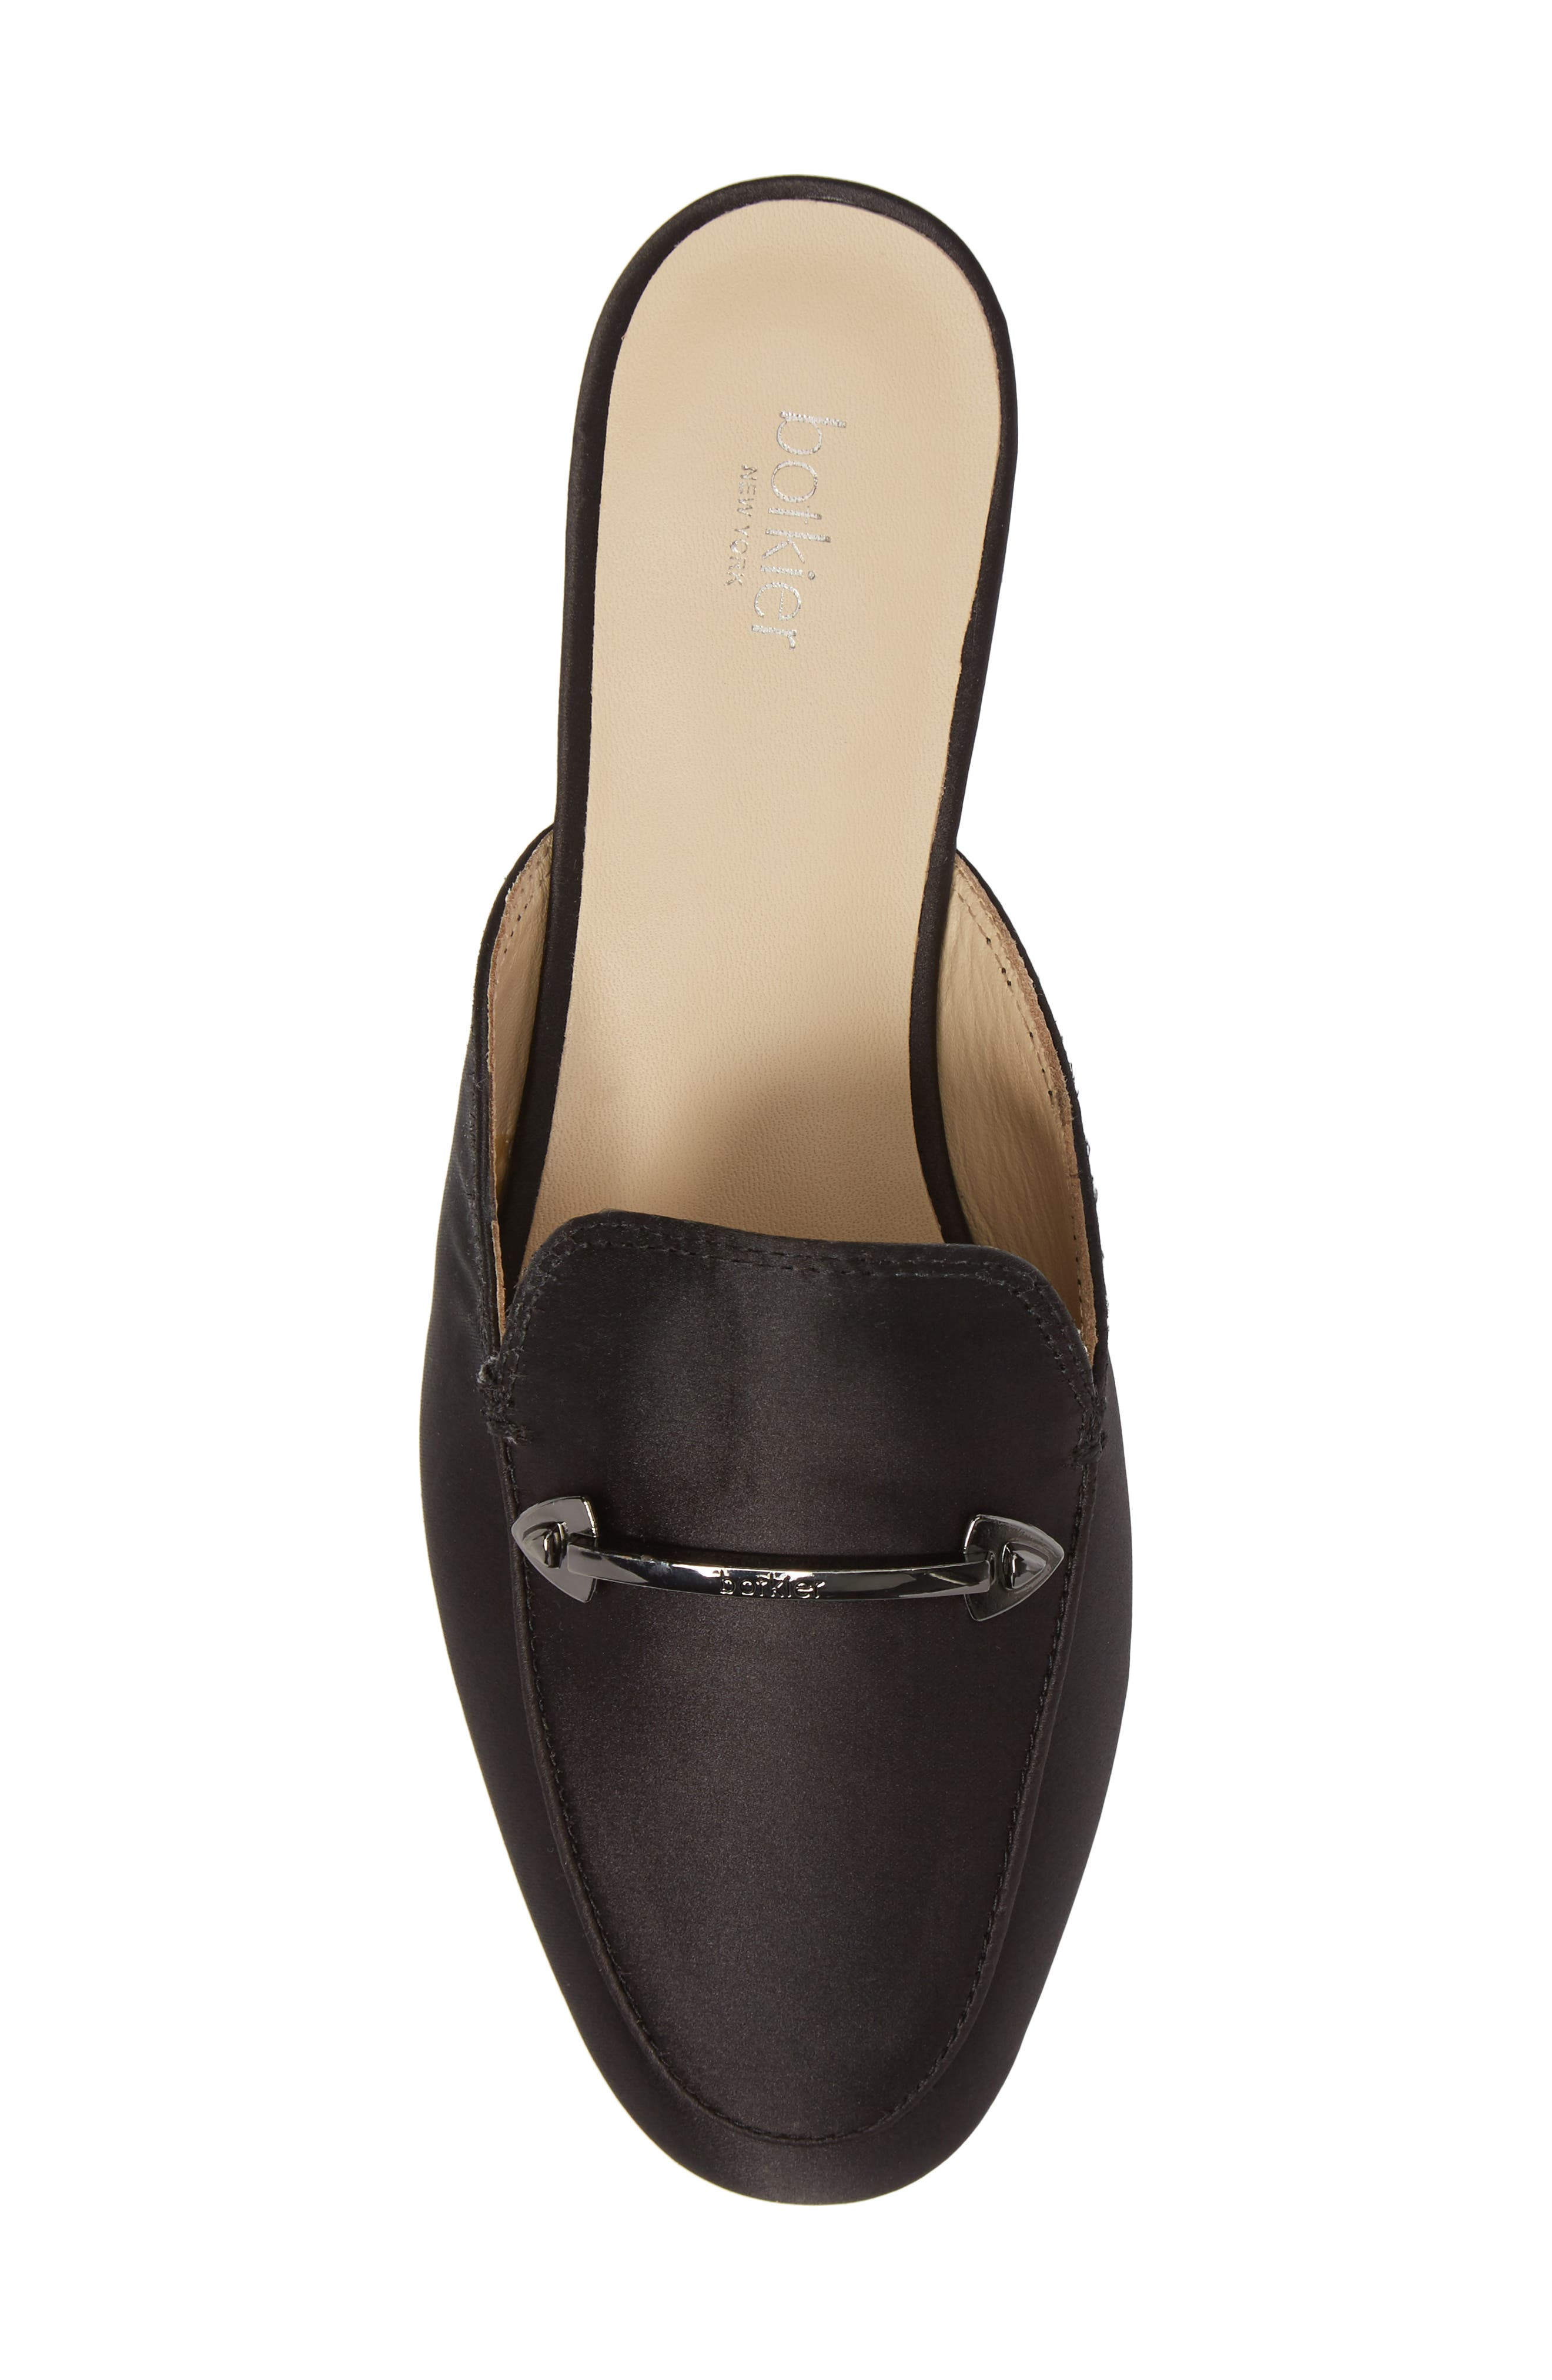 Clare Loafer Mule,                             Alternate thumbnail 5, color,                             003